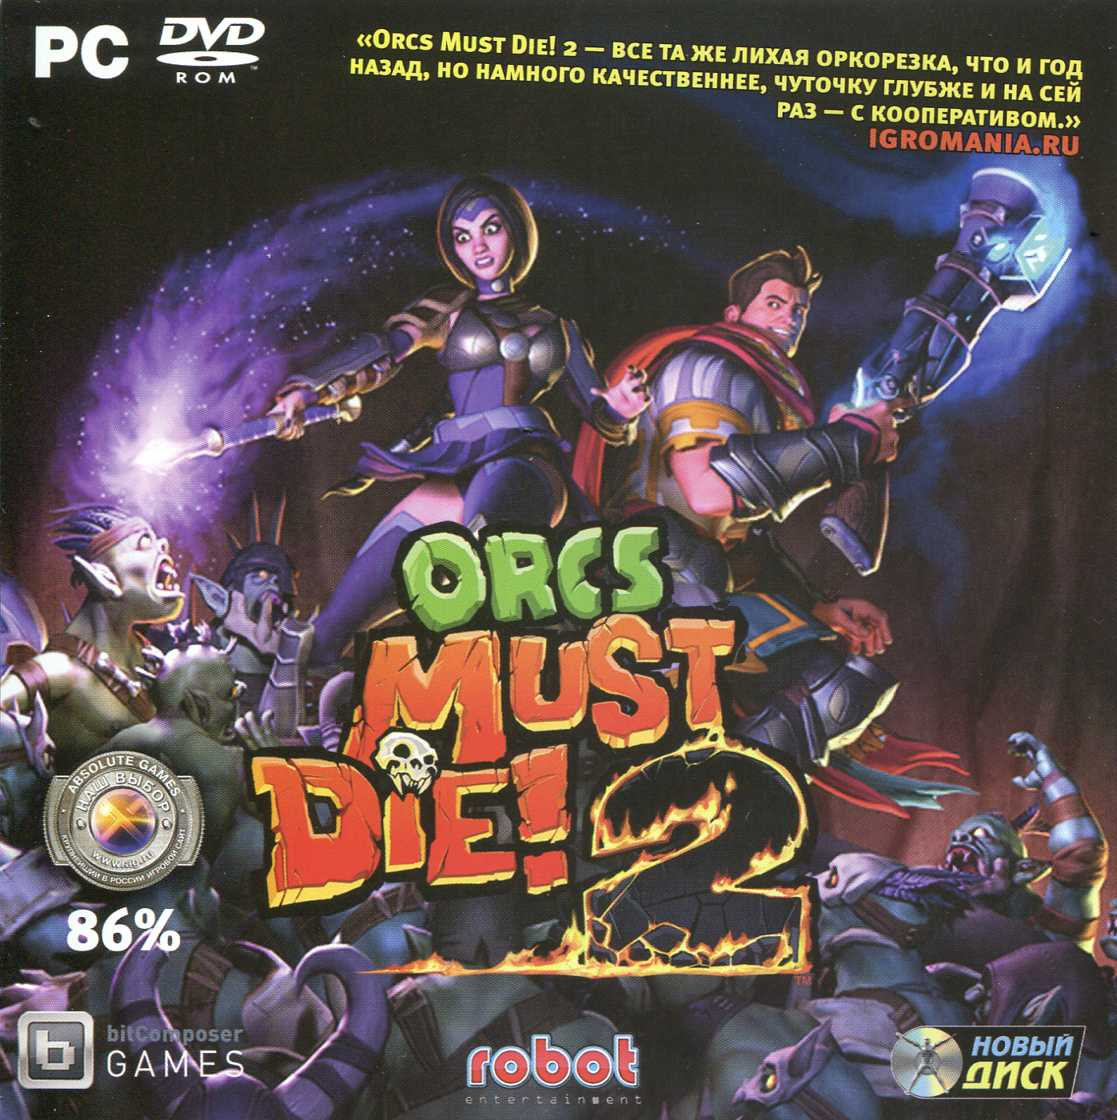 Orcs Must Die! 2 (Steam key, RU/CIS)